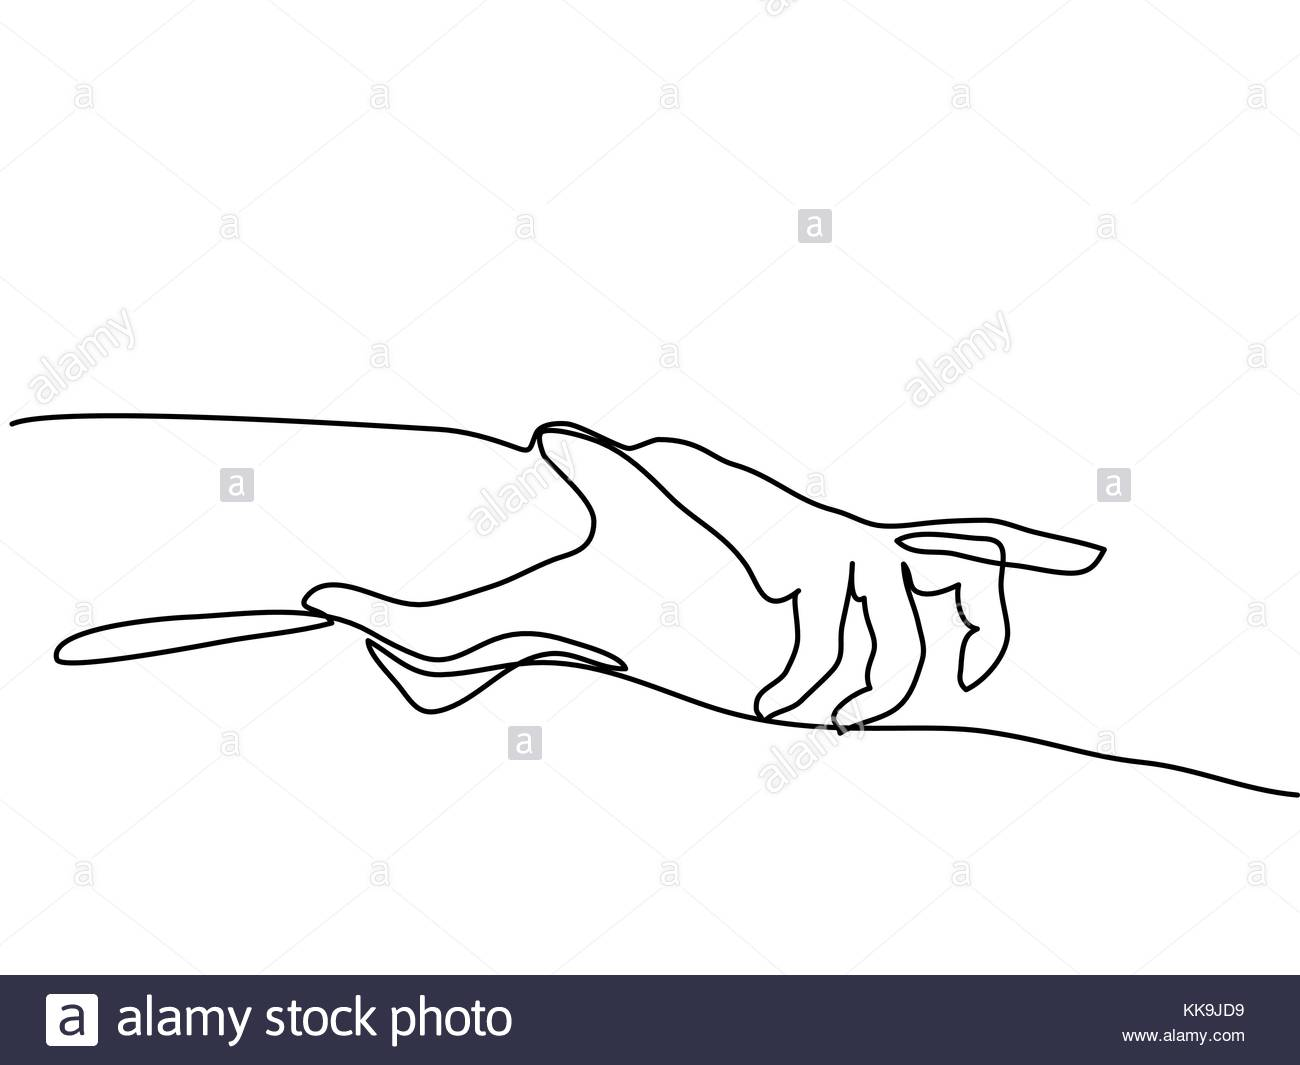 1300x1065 Continuous Line Drawing Of Holding Hands Together Stock Vector Art